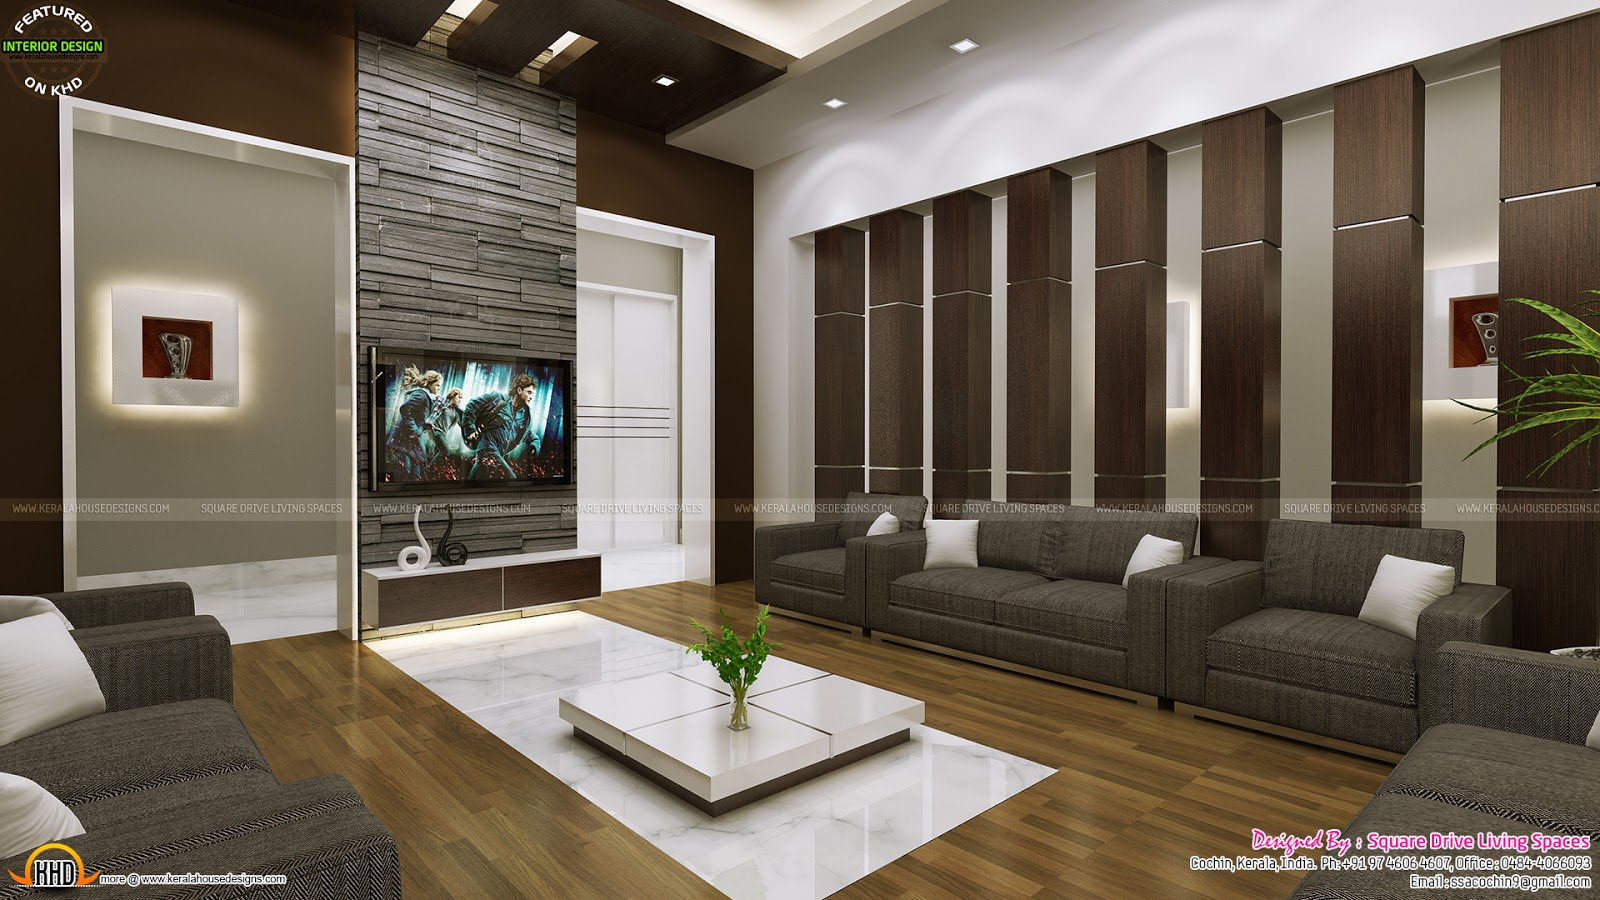 Attractive home interior ideas kerala home design and for Indoor design in home